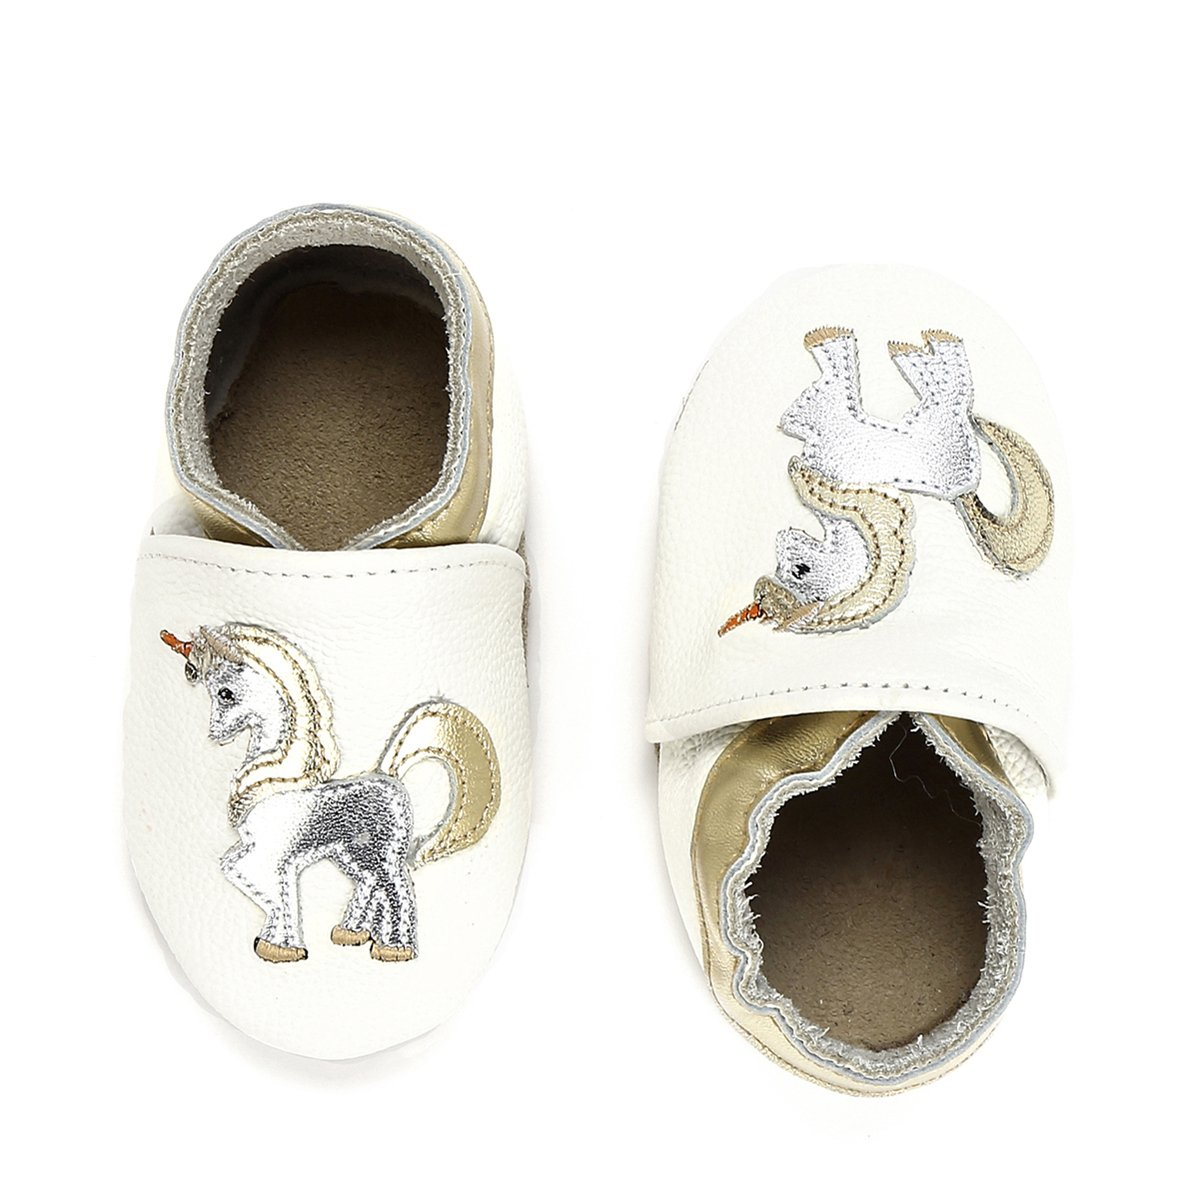 Unicorn Baby Moccasins Girl and Boy Soft Leather Toddler First Walker Shoes 0-6-12-18-24 Months (5 M Toddler(5.0inch/ 6-12Mo.), White Unicorn)